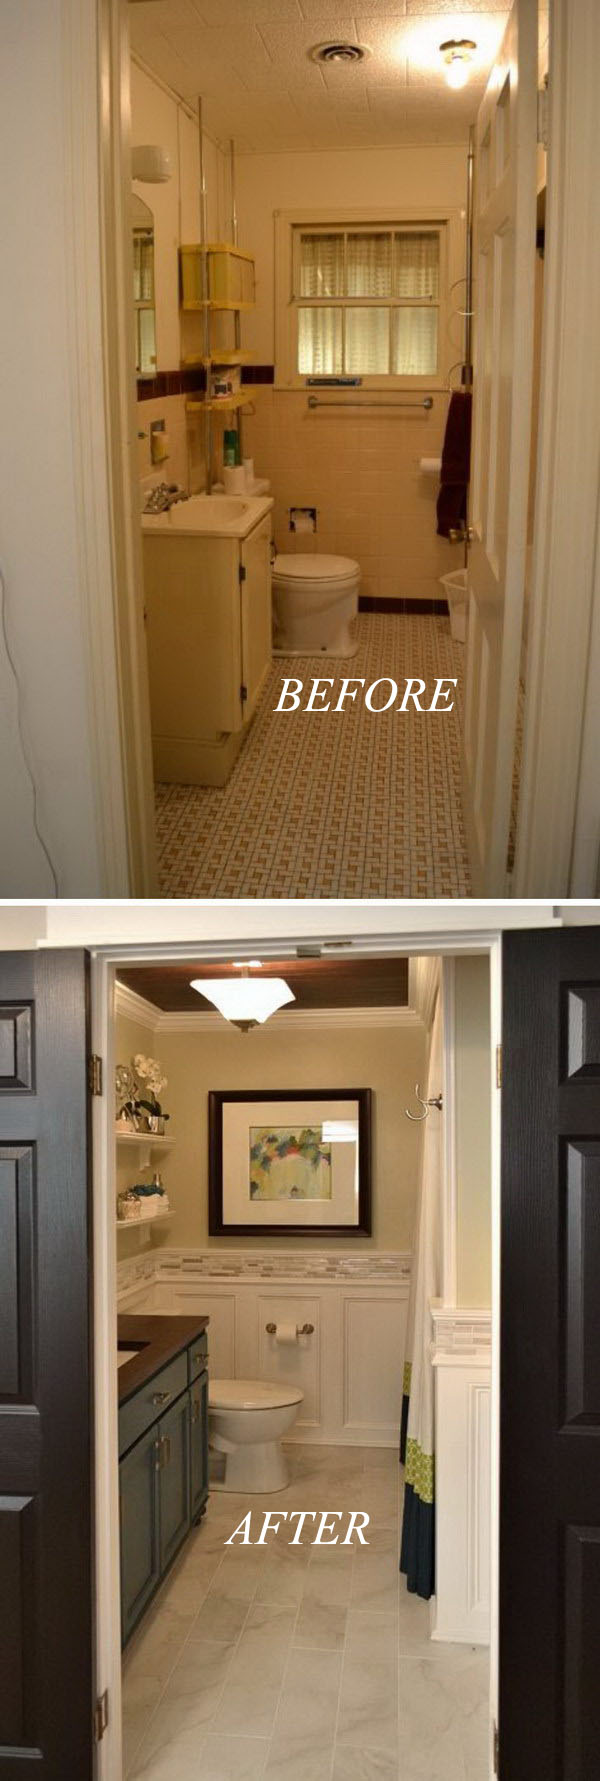 tiny bathroom design 33 inspirational small bathroom remodel before and after 15163